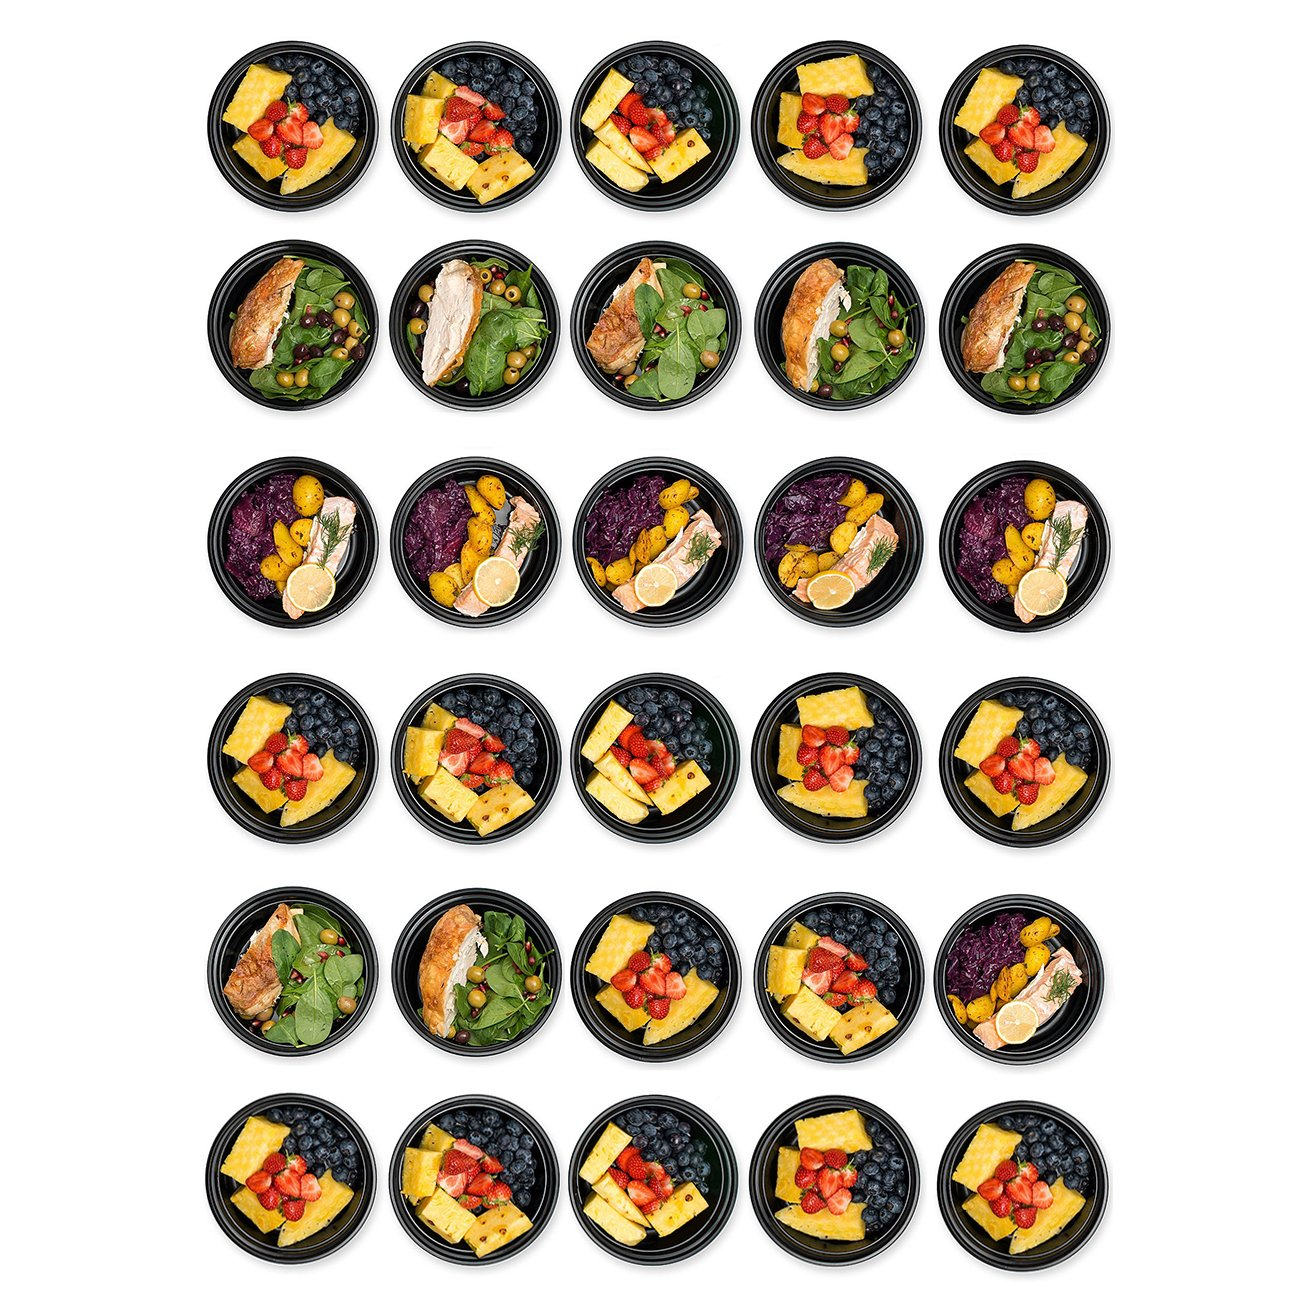 30 Meal Prep Containers Reusable - Disposable Food Containers Meal Prep Bowls - Plastic Containers with lids - Plastic Food Storage Containers with Lids - Lunch Containers for adults to go Containers by Prep Naturals (Image #3)